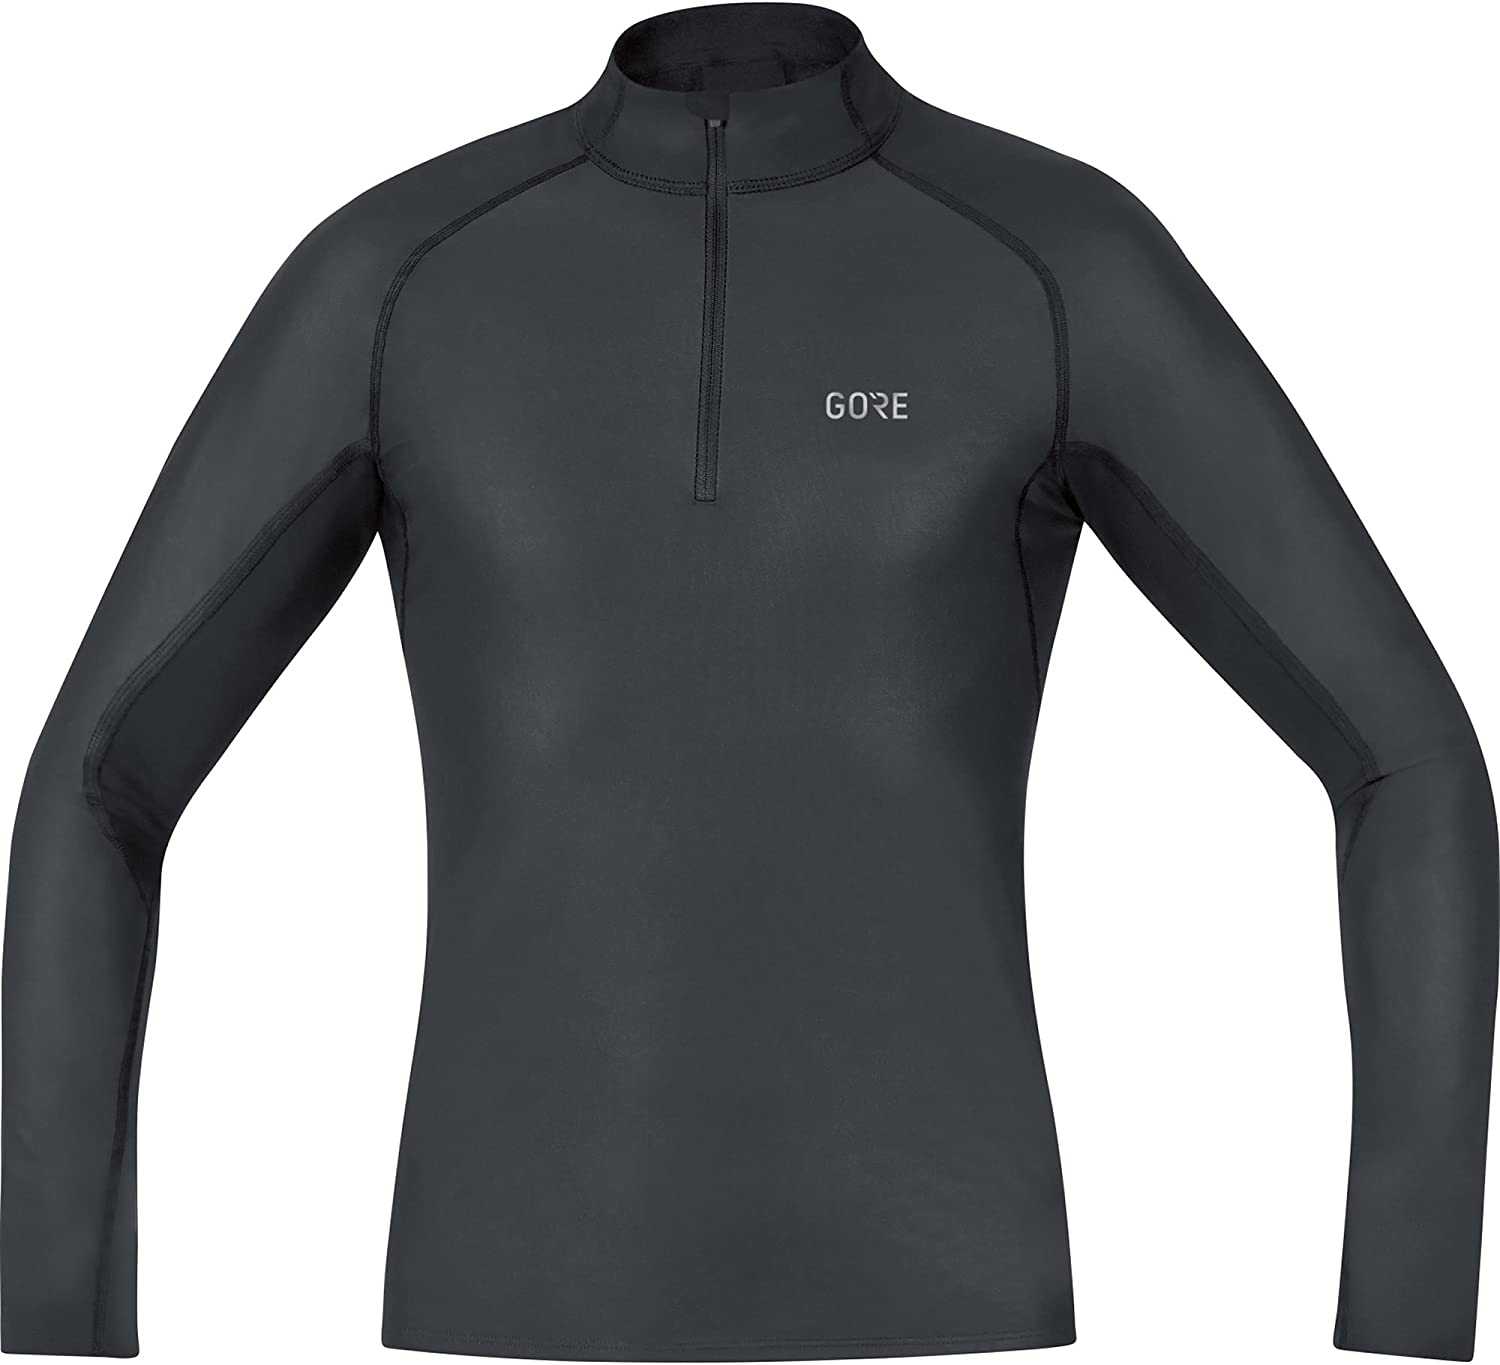 Taille Fabricant : M M GORE WEAR 100323 Maillot Homme Noir FR